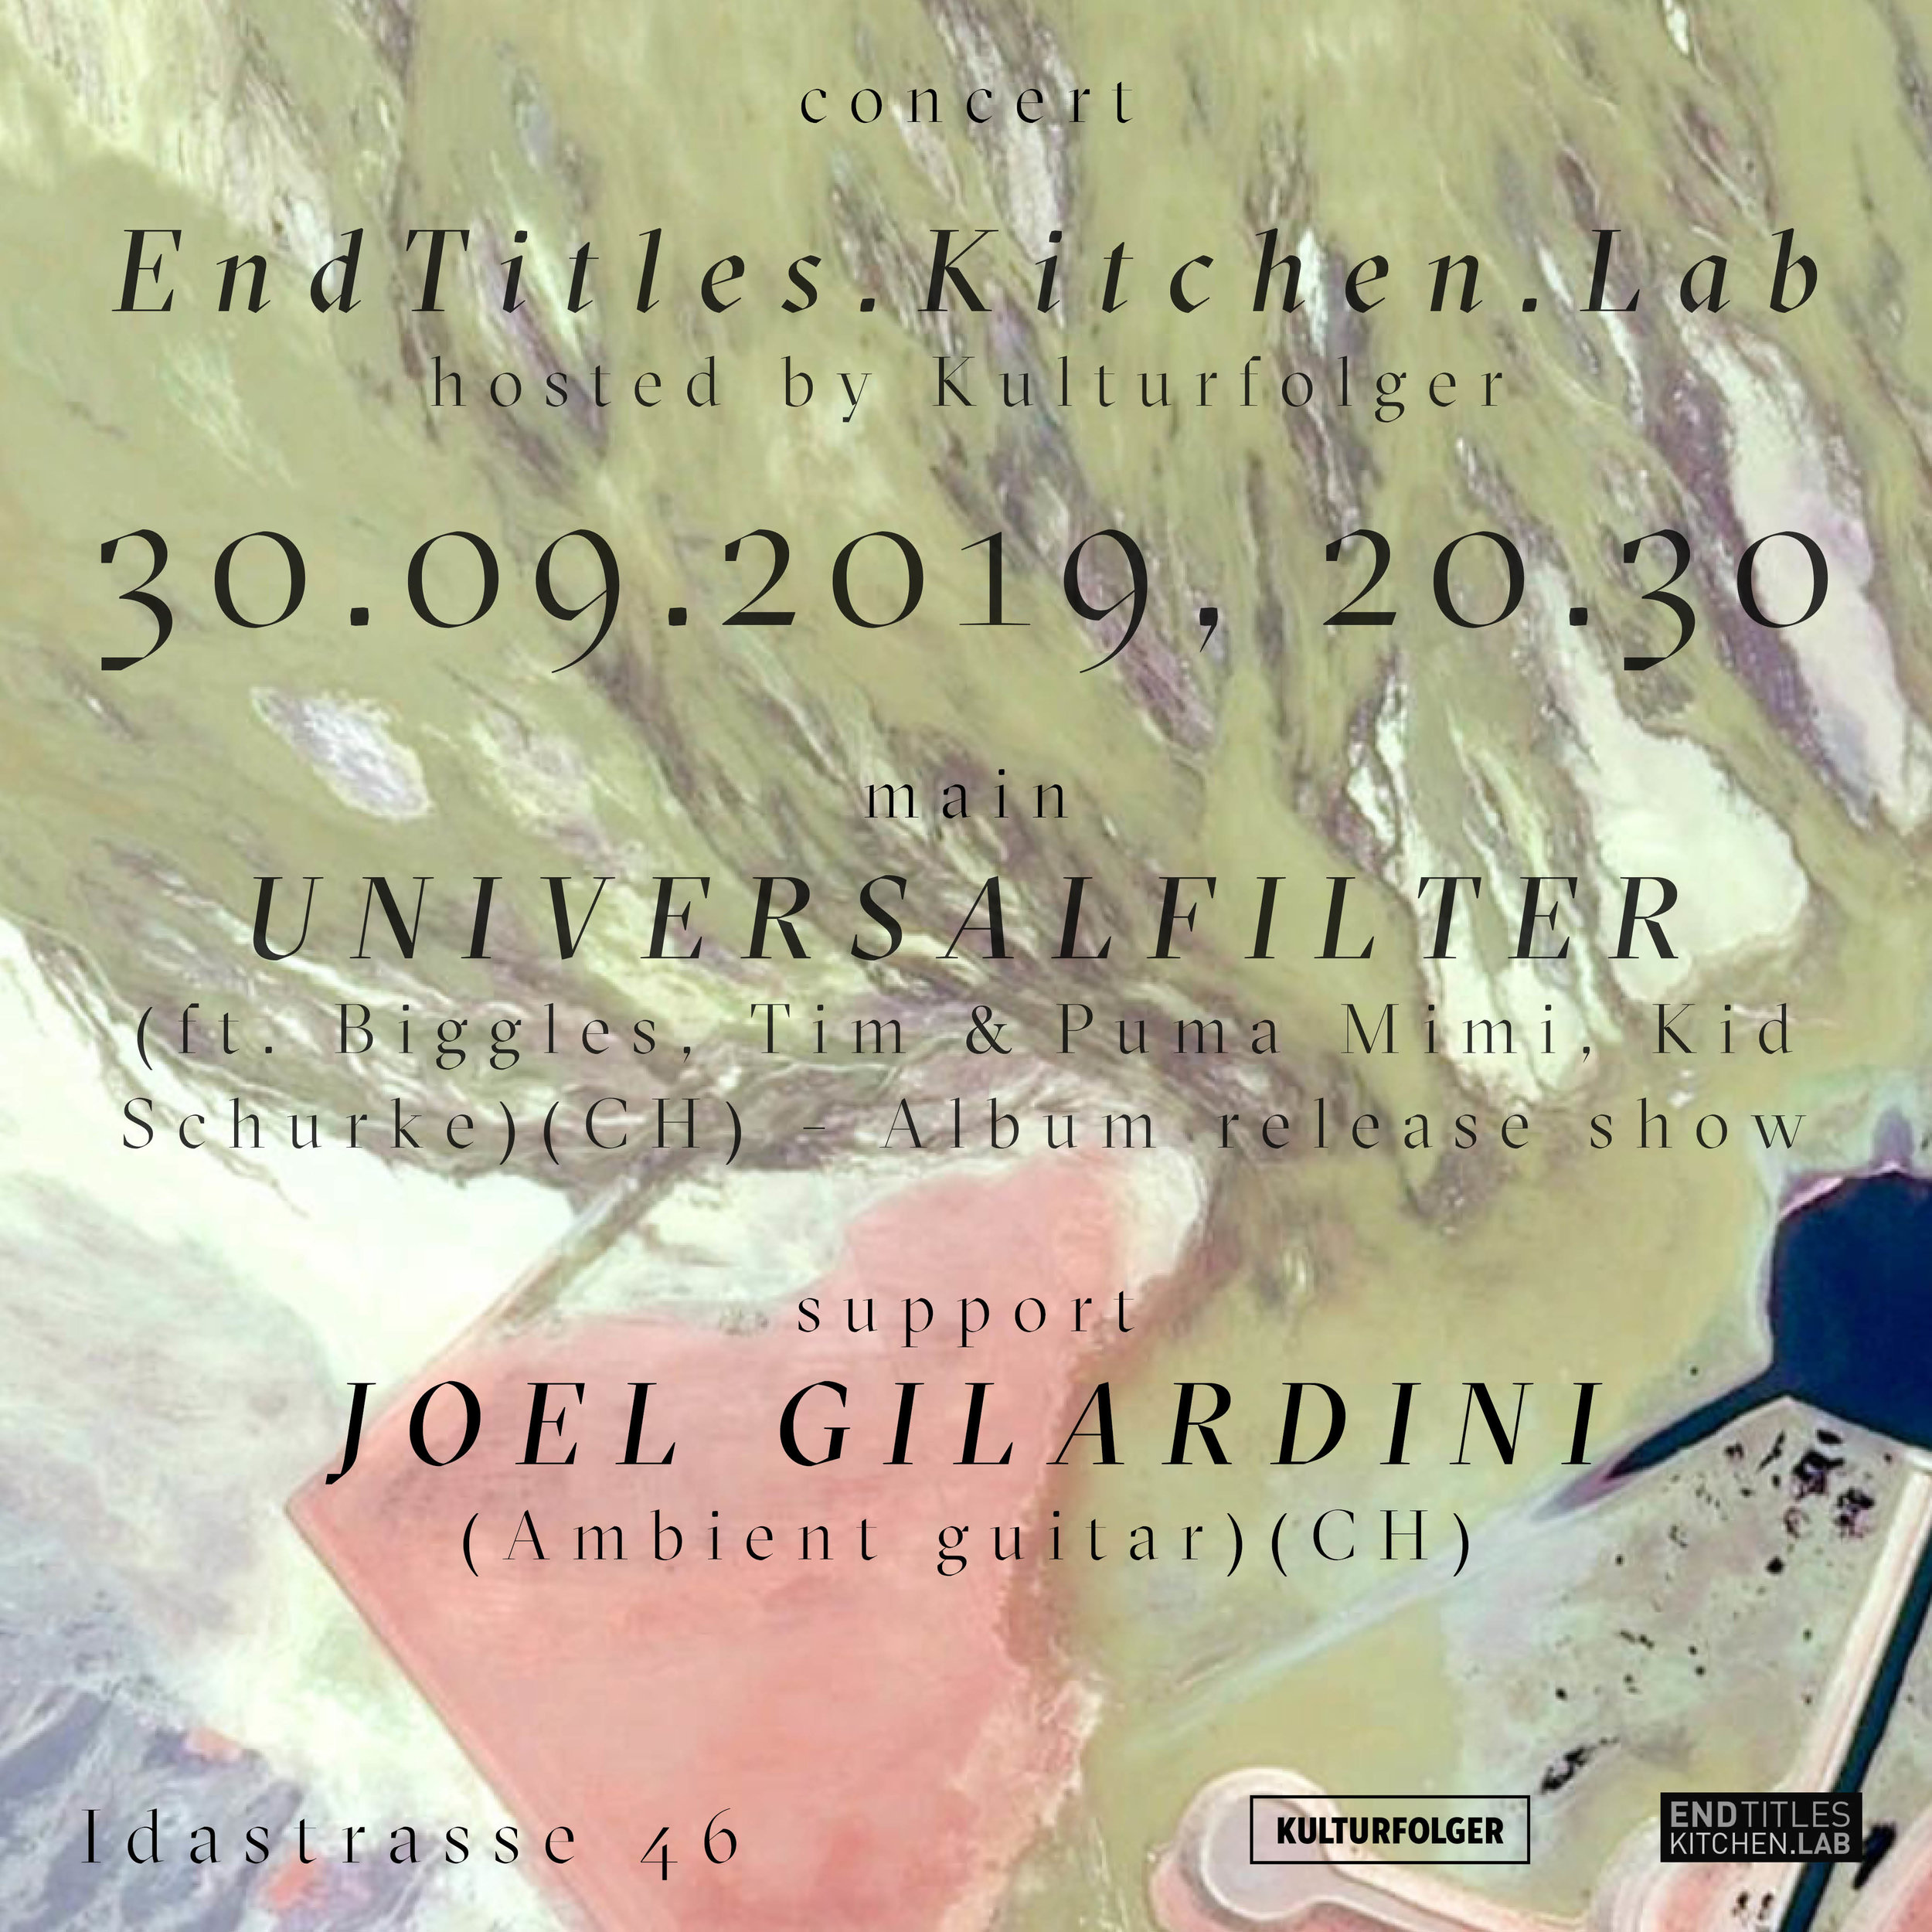 1. Universalfilter  (feat. Biggles, Tim, Kid Schurke)  (CH) -  Album Release Show !!!  2. Joel Gilardini (Ambient Guitar) (CH)    ABOUT:  Joel Gilardini is an experimental guitarist and sound designer, based in Zurich (Switzerland). Being a self-tough guitarist, and driven by the urge and the will to experiment with sounds, Joel followed a very peculiar path which lead him over a broad range of soundfields, touching different musical attitudes and genres like metal, ambient, doom, dub, and noise. By using live‐looping, improvisation and instant composition techniques, Joel creates a very unique biosphere, where these elements are constantly blended together, giving birth and shape to continuously morphing soundscapes and moods. Involved in various projects, he is well known for his live-ambient-guitar sets as an opening act for Nik Bärtsch's Ronin (ECM) in Zurich's clubs, as well as being the mastermind behind the experimental-doom-metal act The Land Of The Snow and part of the noise-industrial duo Mulo Muto (together with Attila Folklor, from grindpunkers Insomnia Isterica). He has worked and collaborated with names in the like of She Retina Stimulants, Aborym, Mingle, Nicolas Stocker, Eraldo Bernocchi, Jacopo Pierazzuoli, Ballett Zurich, dancer Benoît Favre, and the collective House Of Pain.    UNIVERSALFILTER:  Looking down from David Bowie's space capsule you can see her. Our blue planet, bathed by her oceans. On one of these people are drowning. On another one there's an island, home to a volcano and an odd orange coloured mushroom of gigantic proportions. It smells of great promise while poisonous to our stomachs. Whoever takes a bite will turn into a giant and will trample all creation with his monstrous feet. But maybe the volcano will act quicker than that. It already seems to start seething.  Welcome to «Mysterious Island». The place where Universalfilter are sitting on a shore, tossing a letter in a bottle into the sea. The bottle is filled with the islan